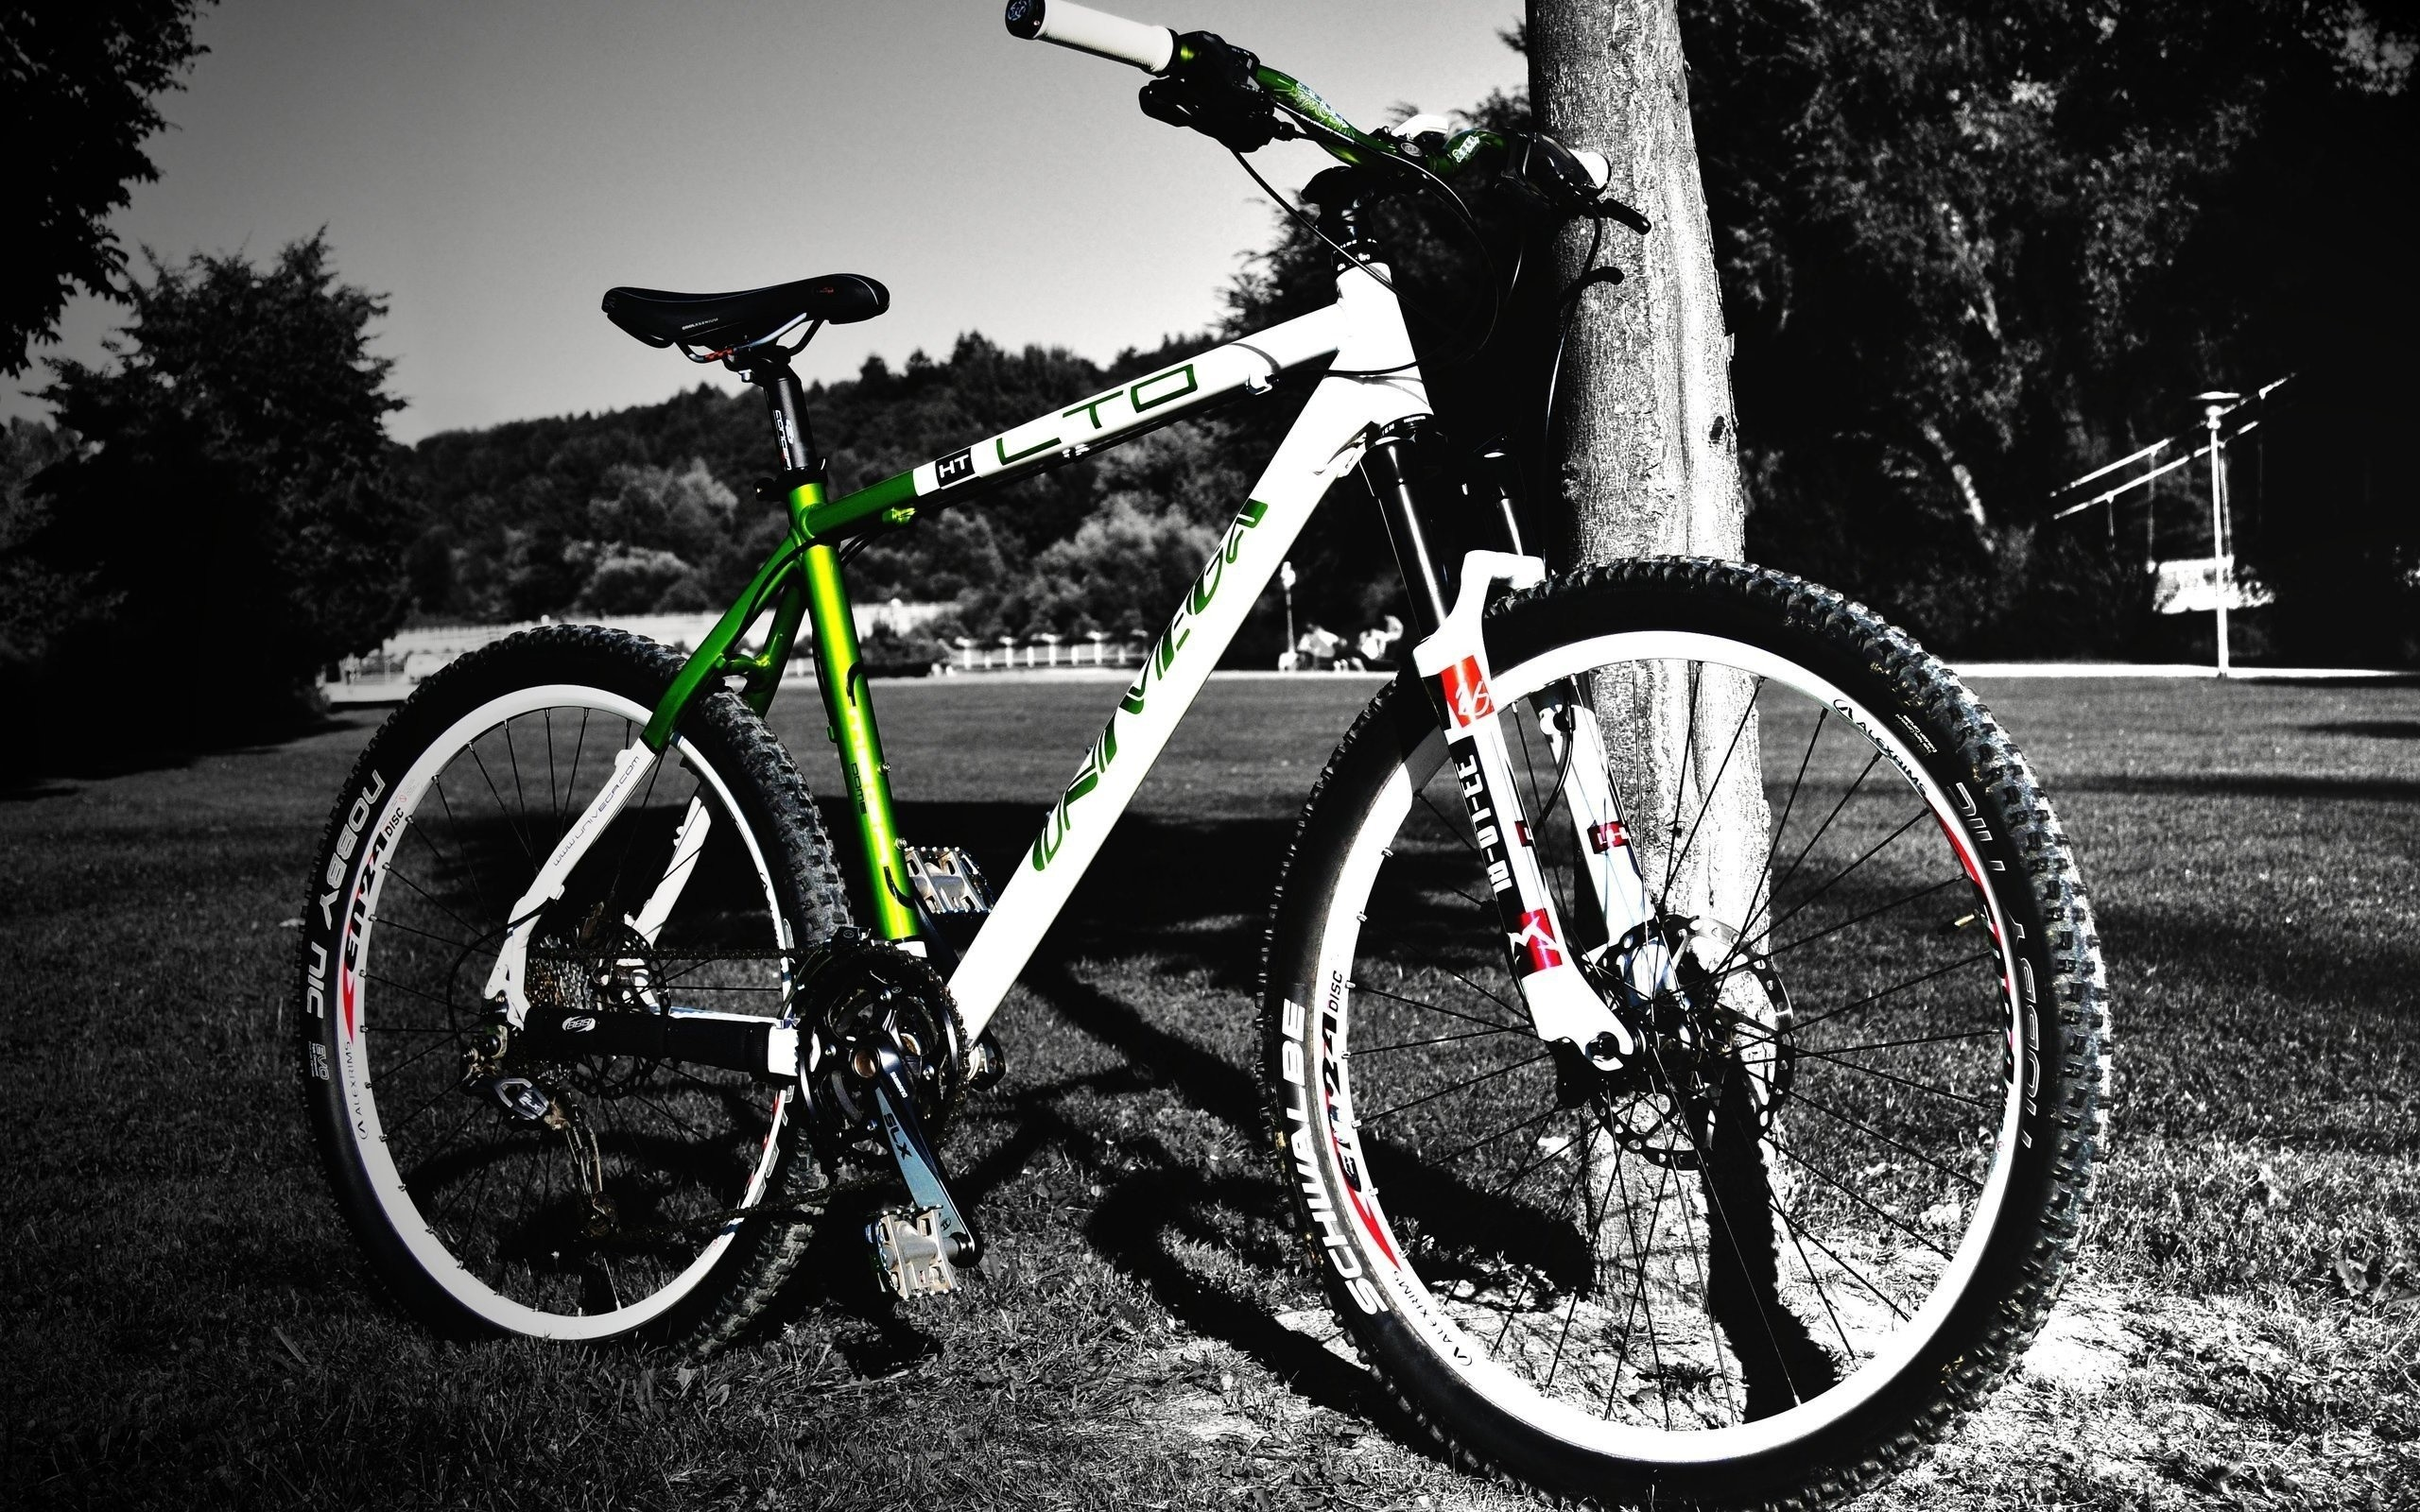 Road Bikes Wallpapers : Get Free top quality Road Bikes Wallpapers for your  desktop PC background